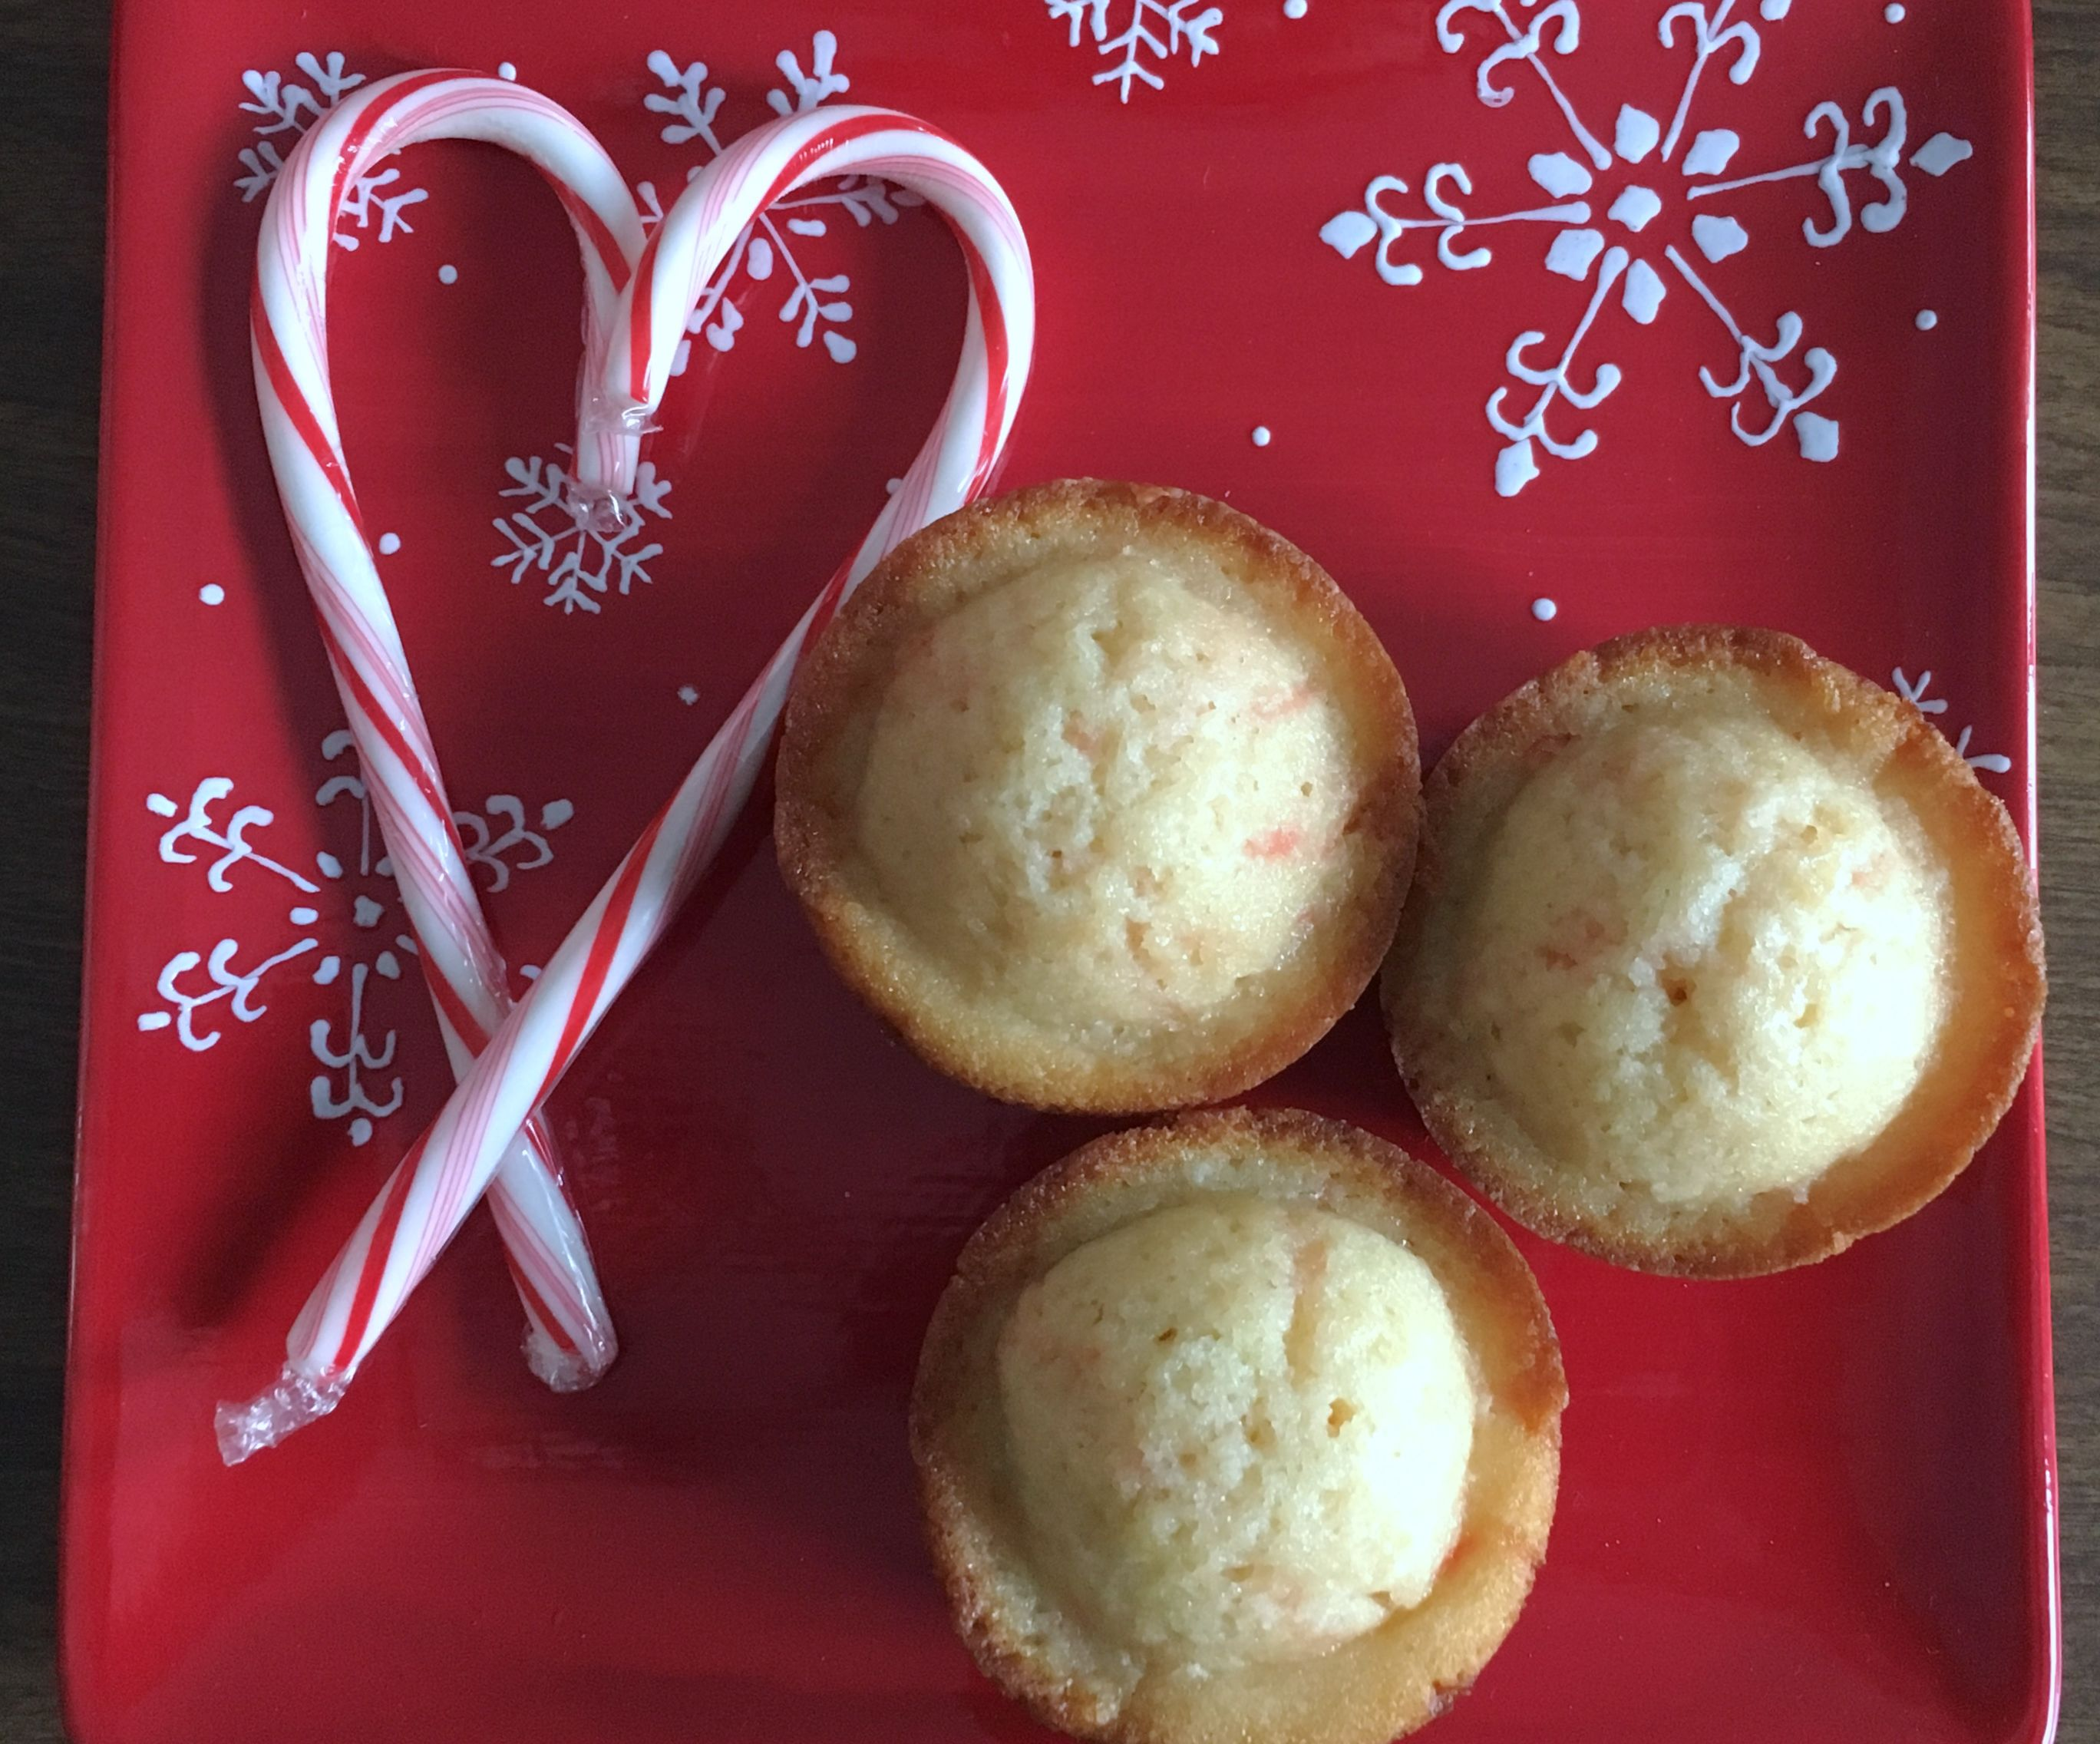 Candy Cane Cupcakes aka Sweet Tomatoes/Souplantation Candy Cane Muffins